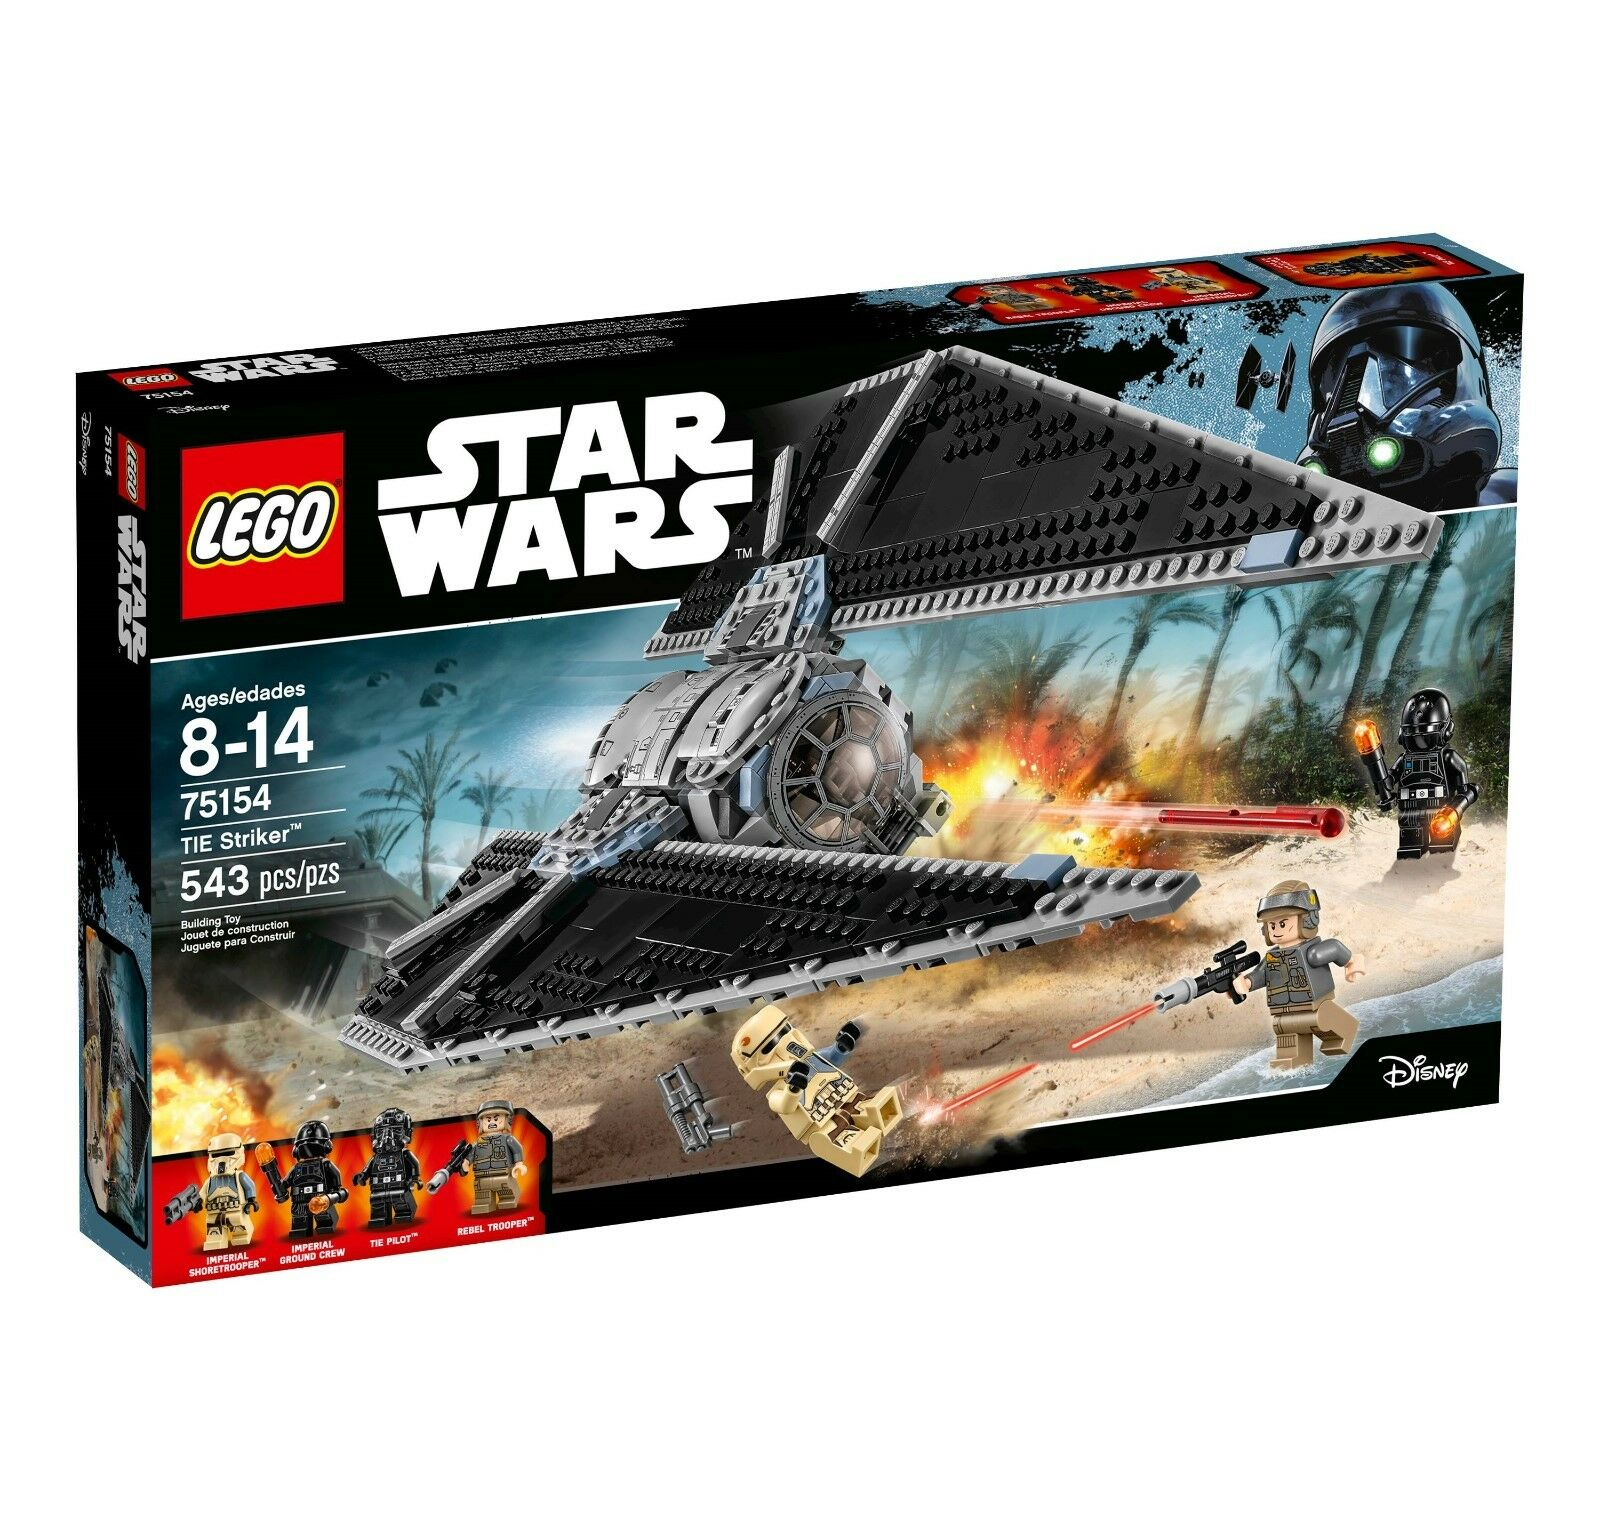 LEGO STAR WARS TIE Striker 75154 large adjustable wings with top and front acces